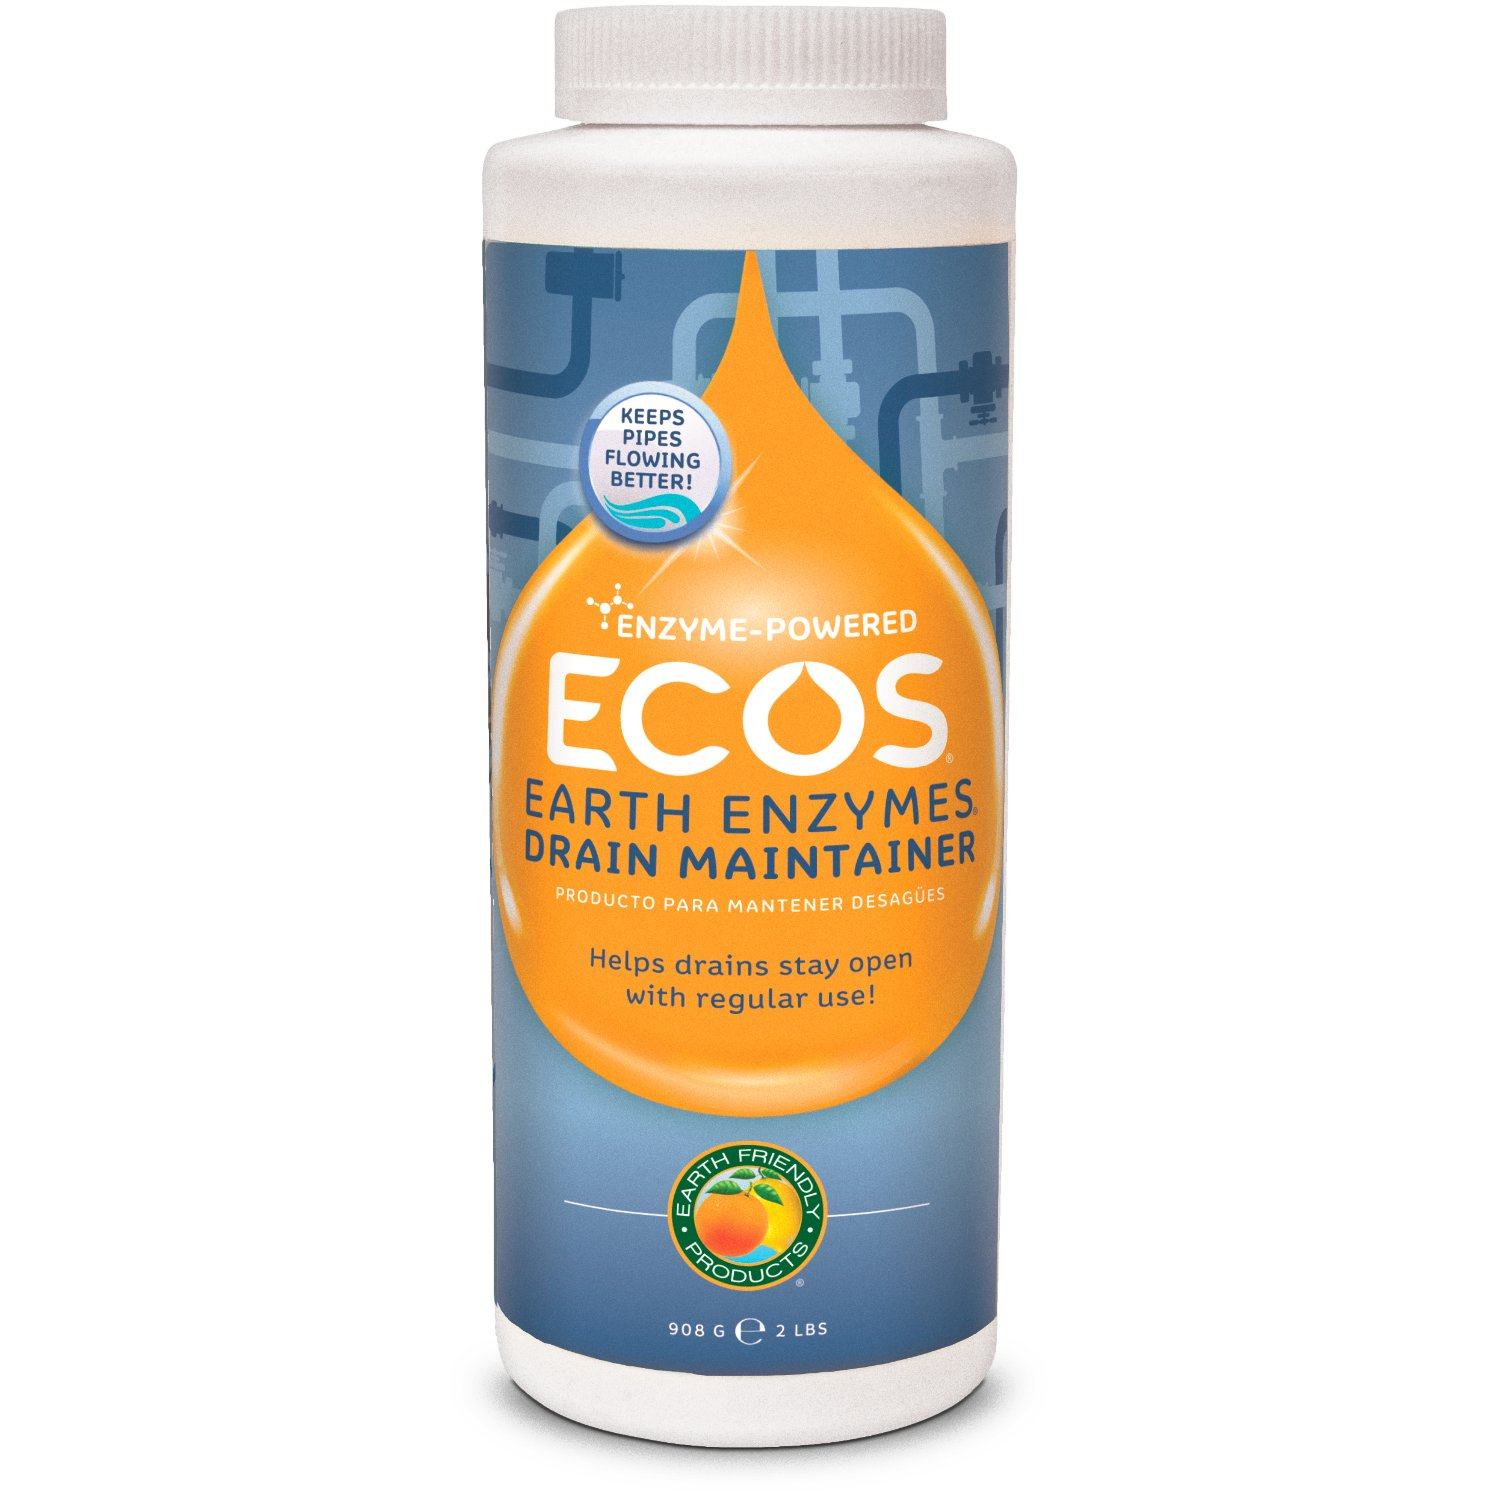 ECOS Earth Enzymes Drain Maintainer - Maintains Free-Flowing Drains. Septic and Greywater Safe. 2 LBS. (Pack of 3)